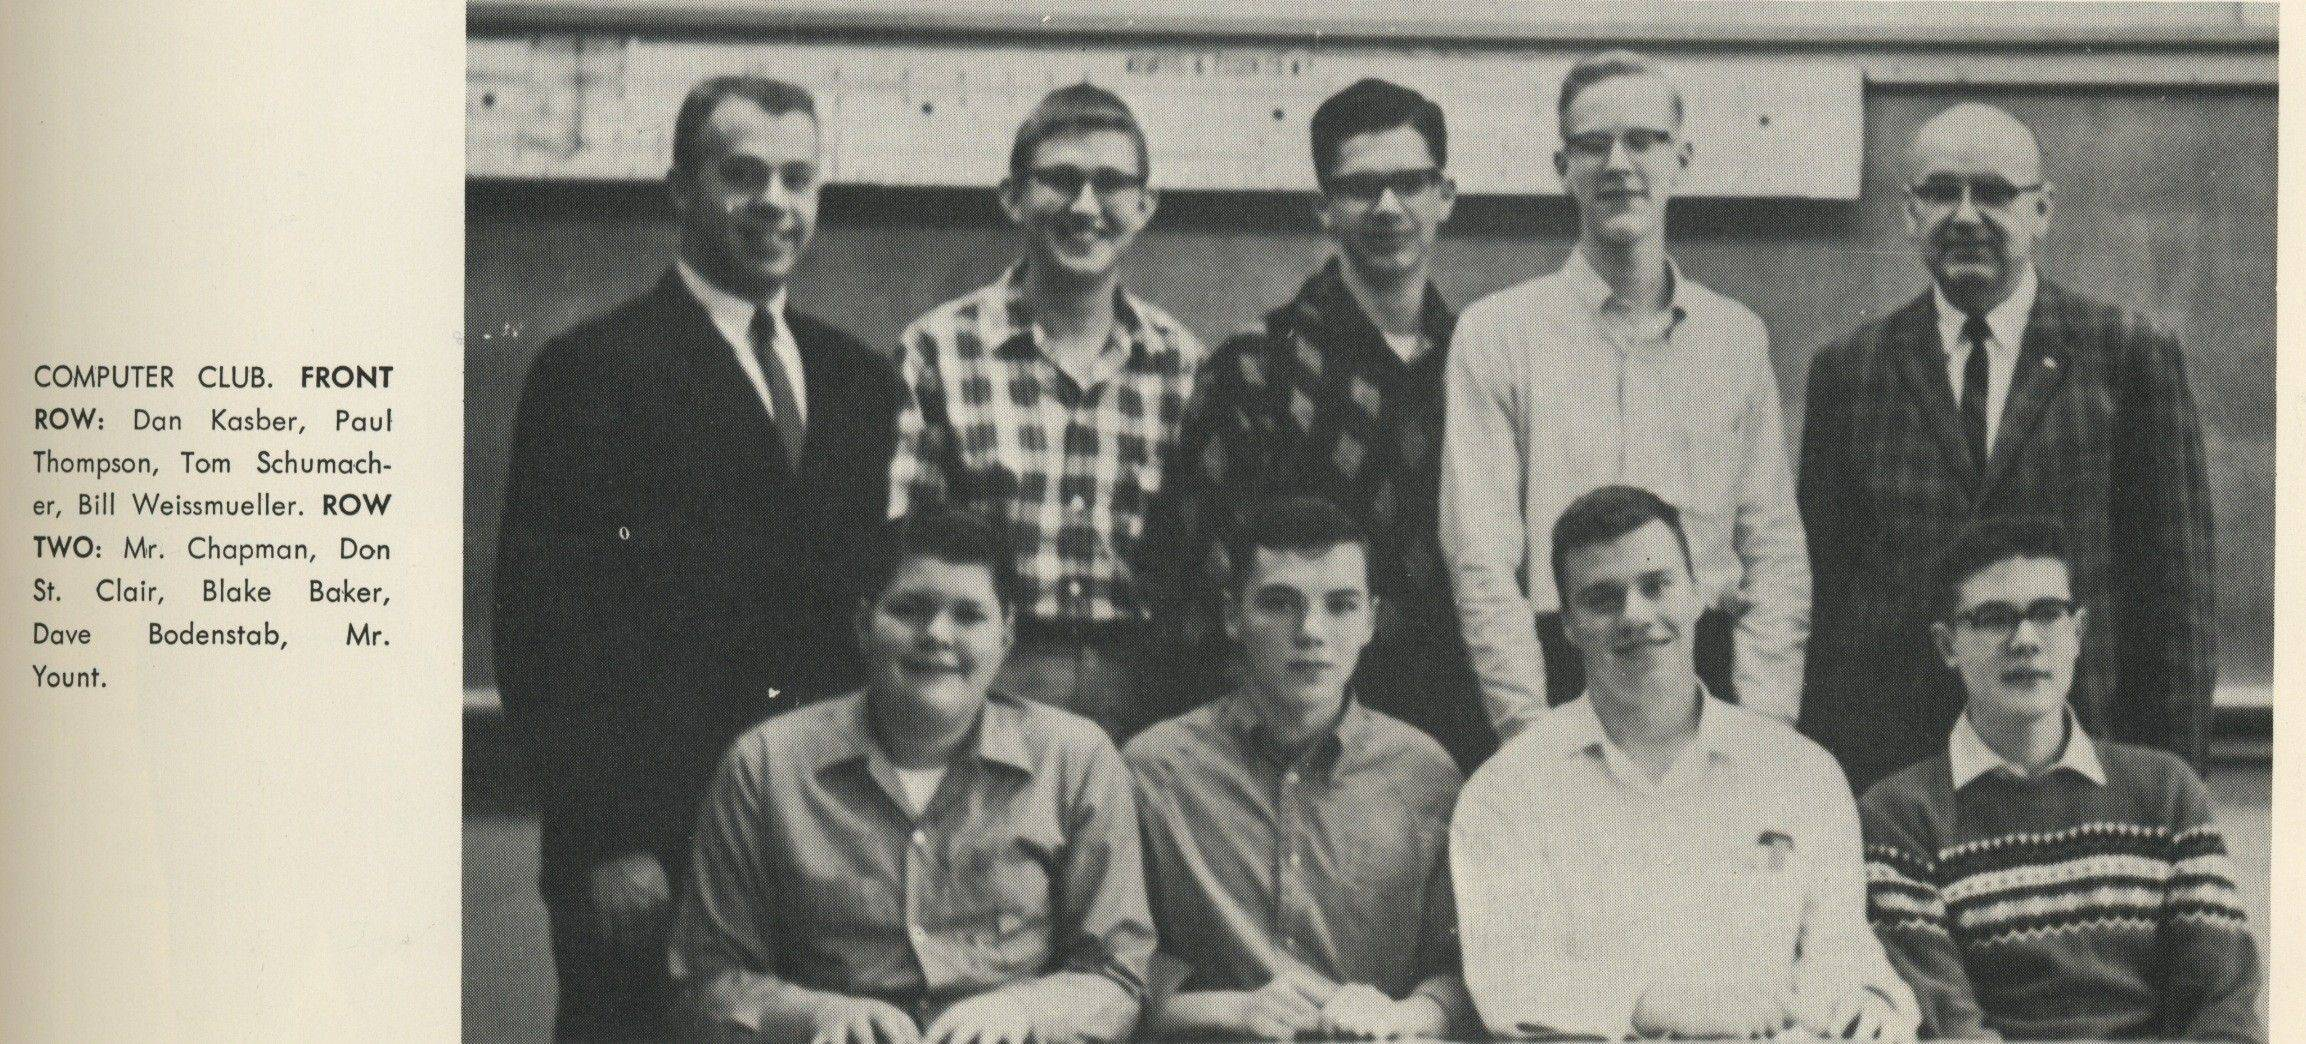 With an eye on the future, Paul Thompson (second from left on the front row) and other 1965 members of the computer club at Prospect High School needed a field trip to IBM to see a computer.